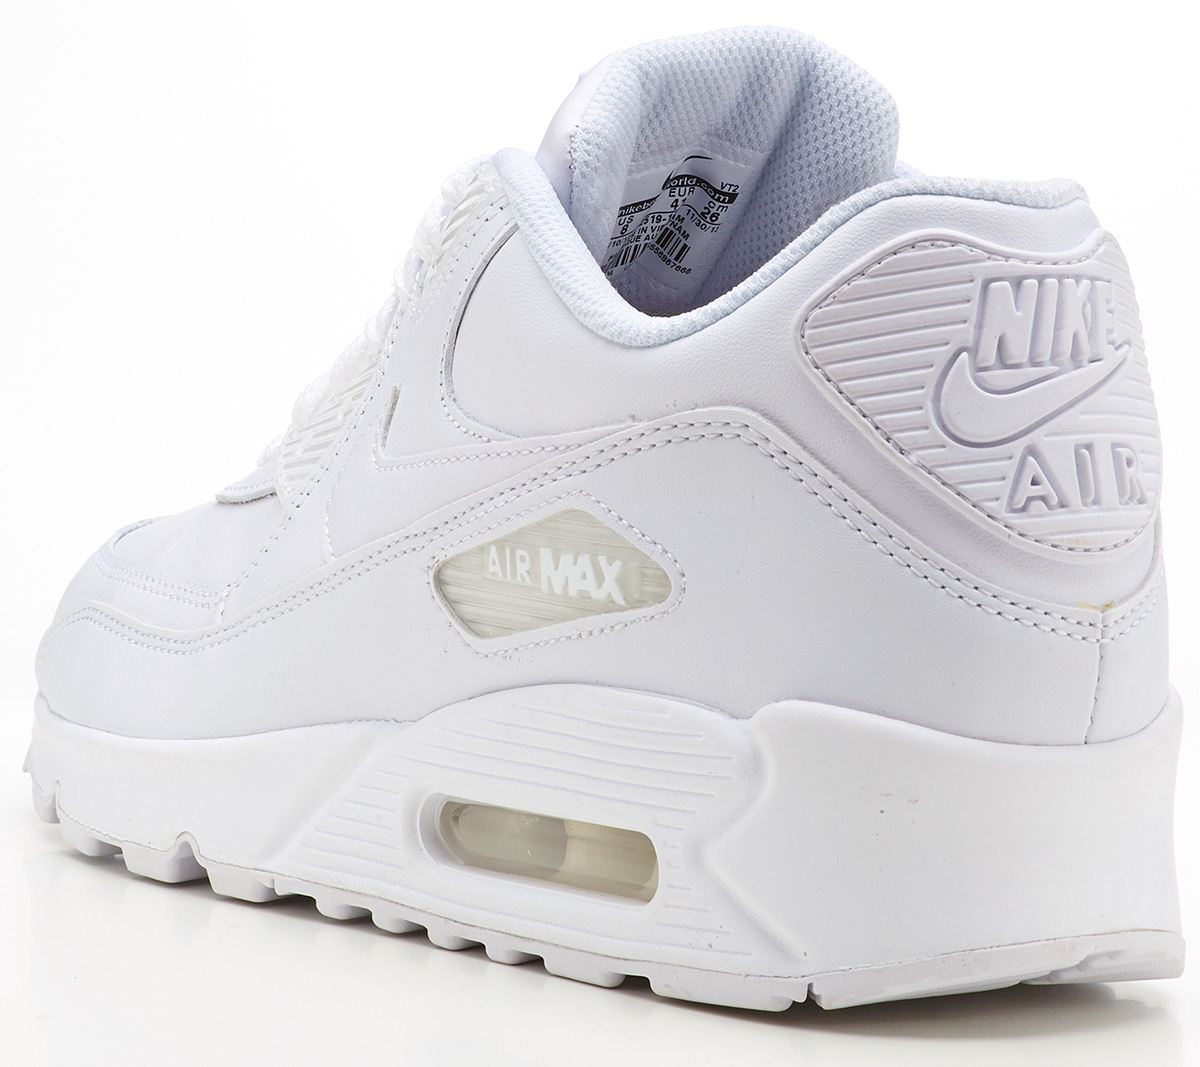 online store 2e180 efada Nike Air Max 90 leather white trainers 302519 113   Clothes, Shoes    Accessories, Men s Shoes, Trainers   eBay!